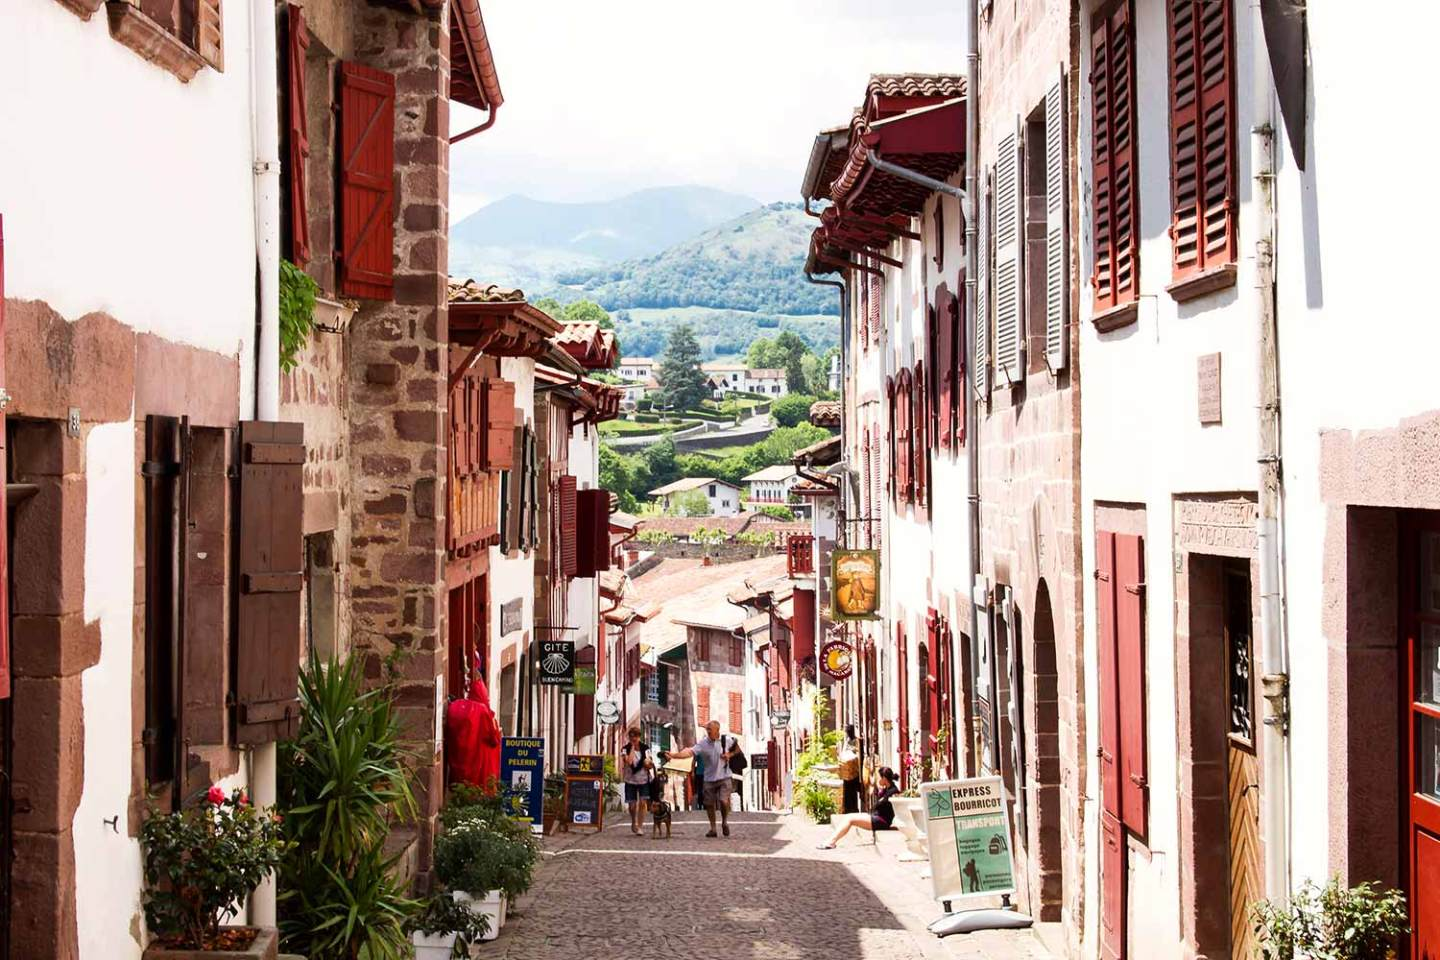 Pays Basque - Saint-Jean-Pied-de-Port